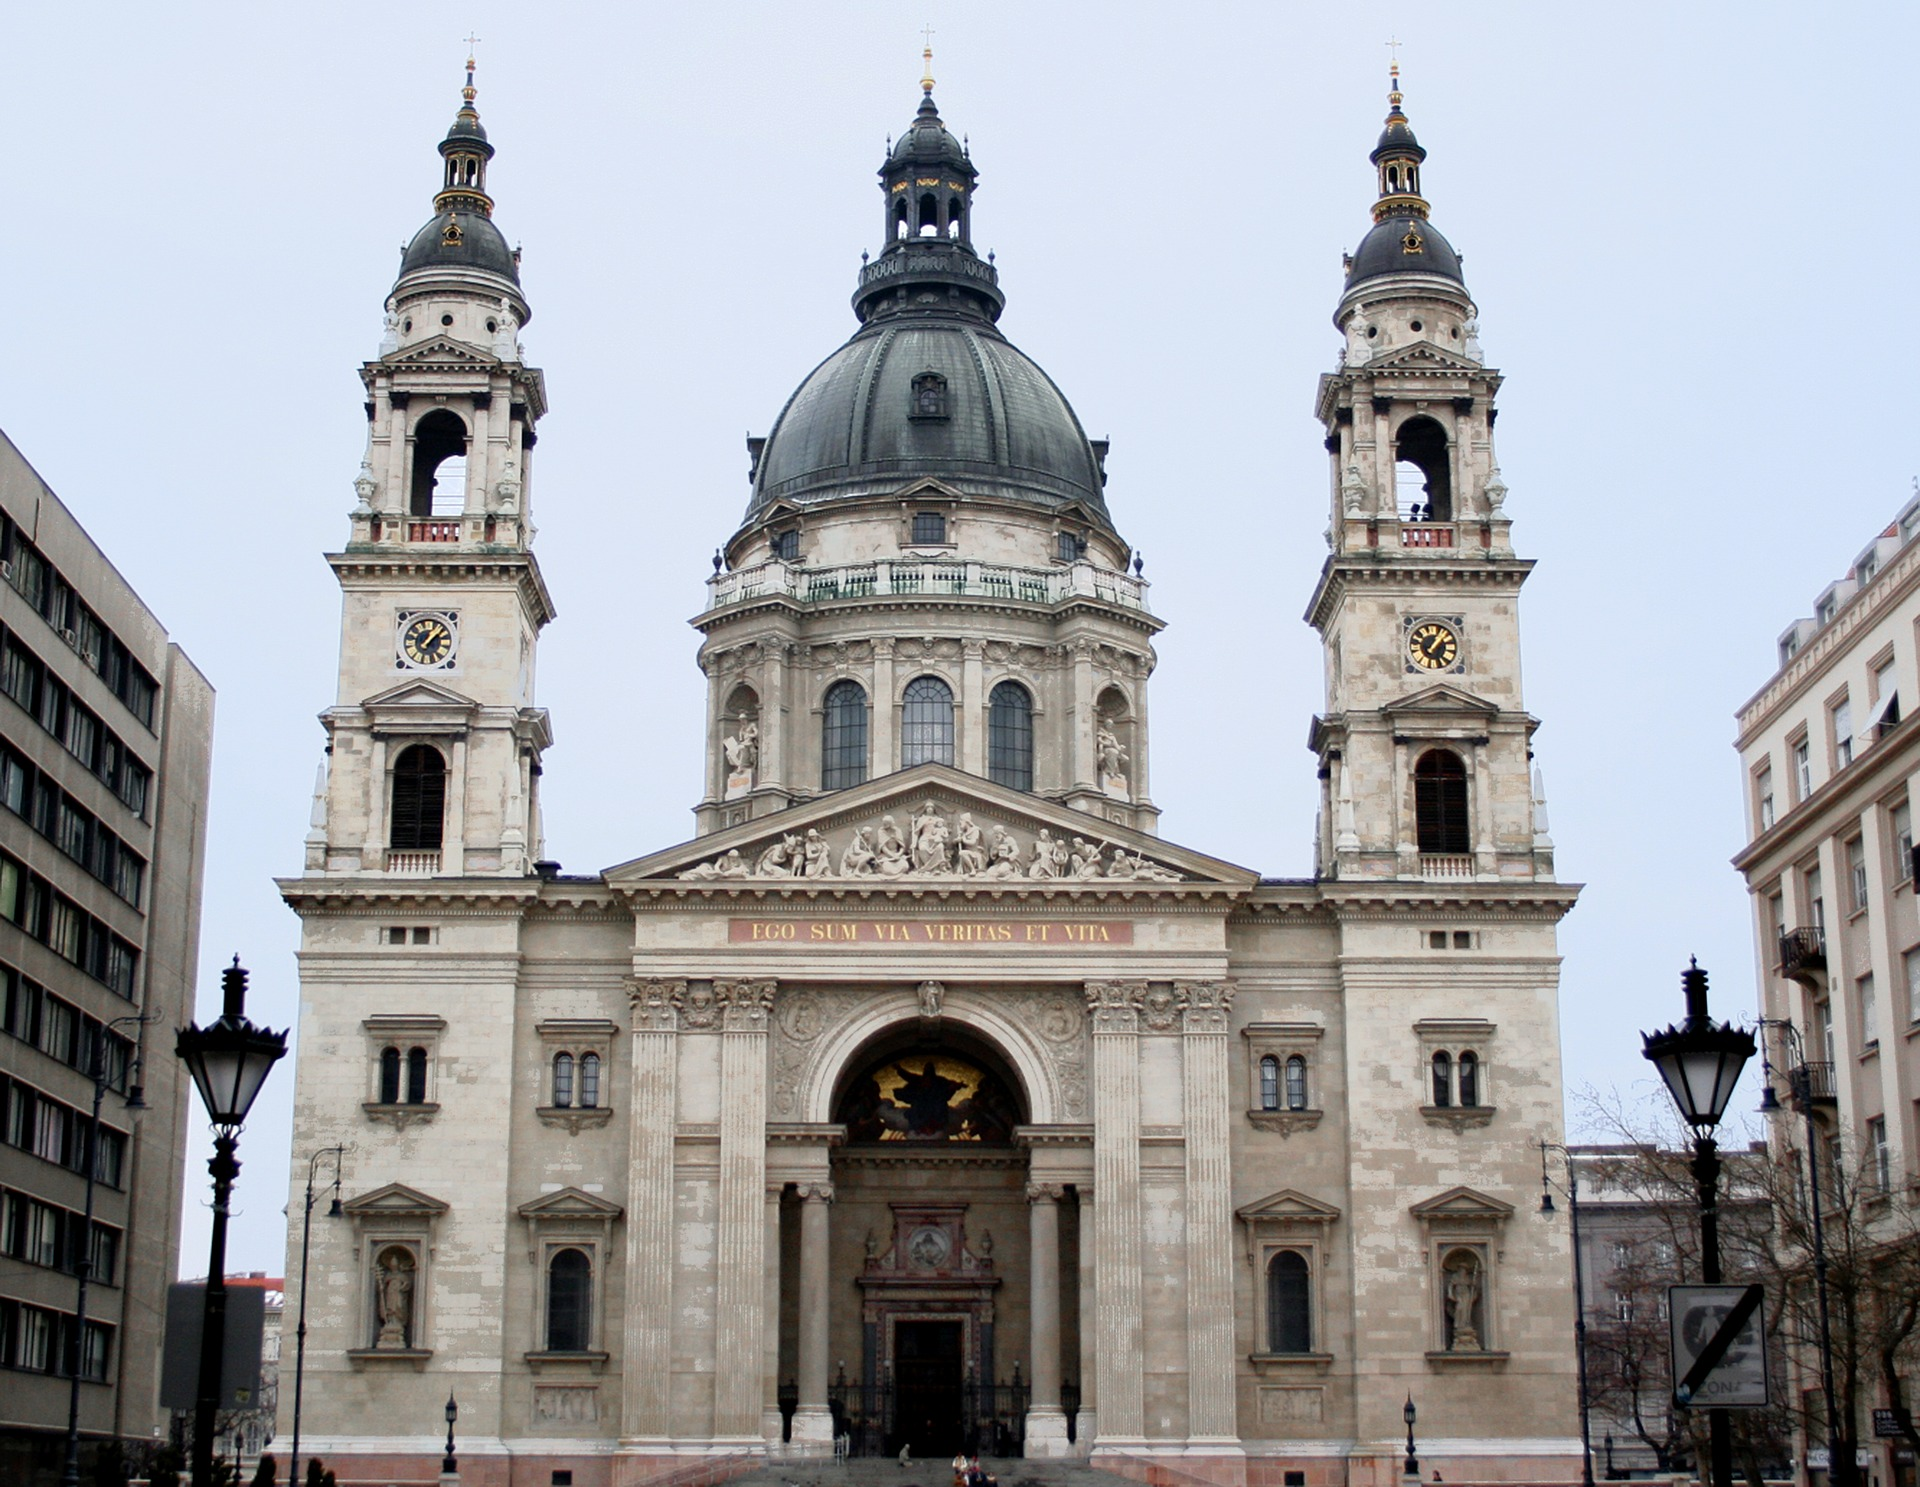 St. Stephen's Basilica in Hungary